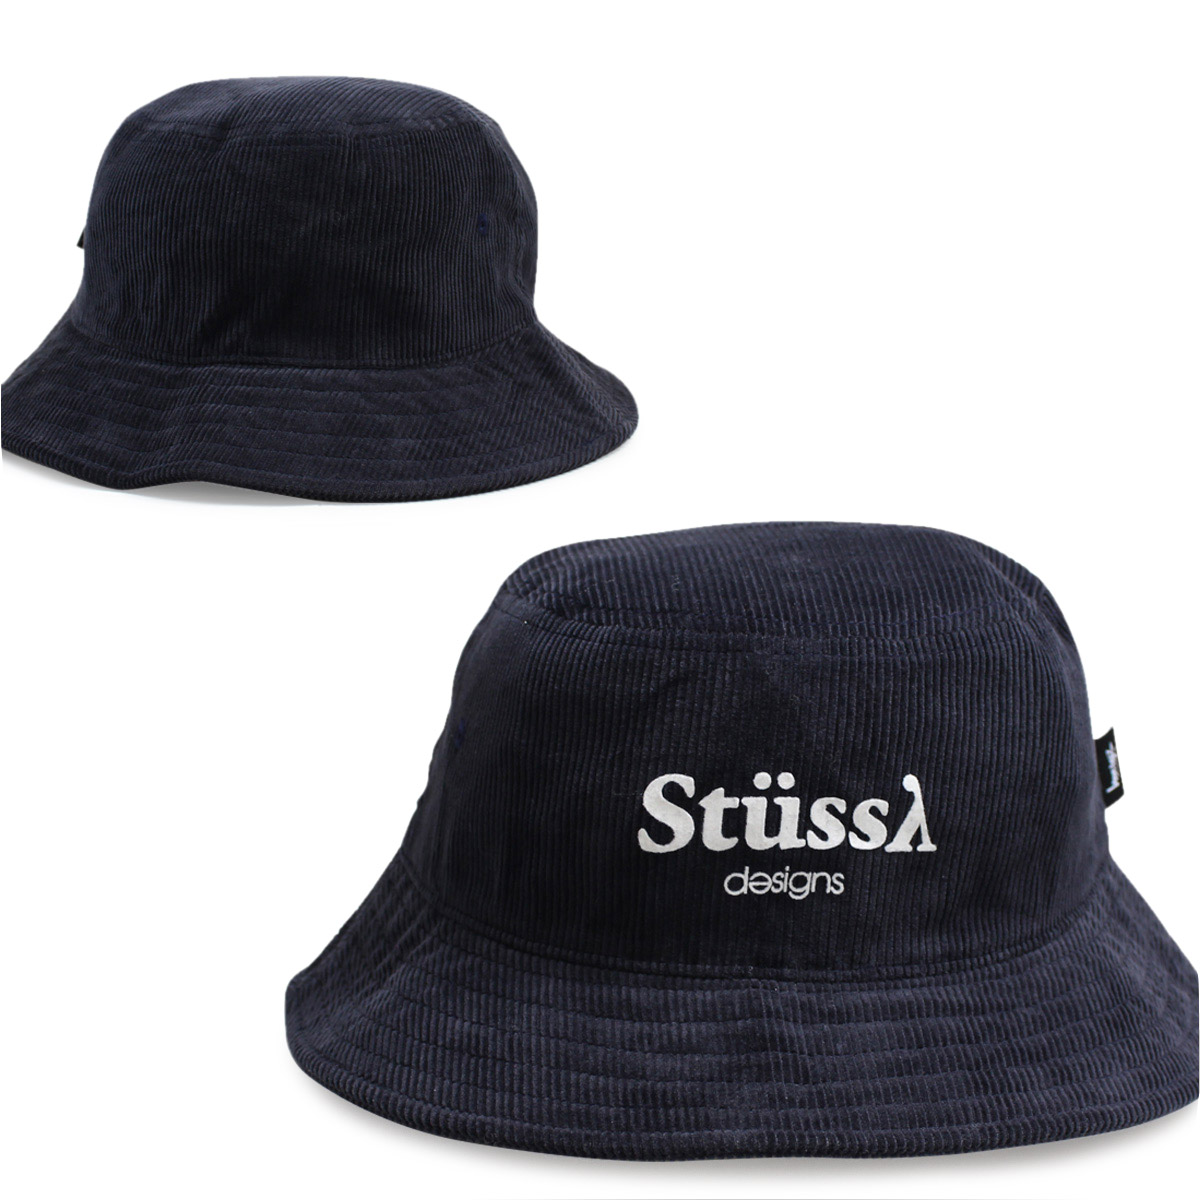 WOMEN STUSSY Stussy women Hat hats bucket Hat STUSSY DESIGNS BUCKET HAT  Navy women s b6ea2117c15